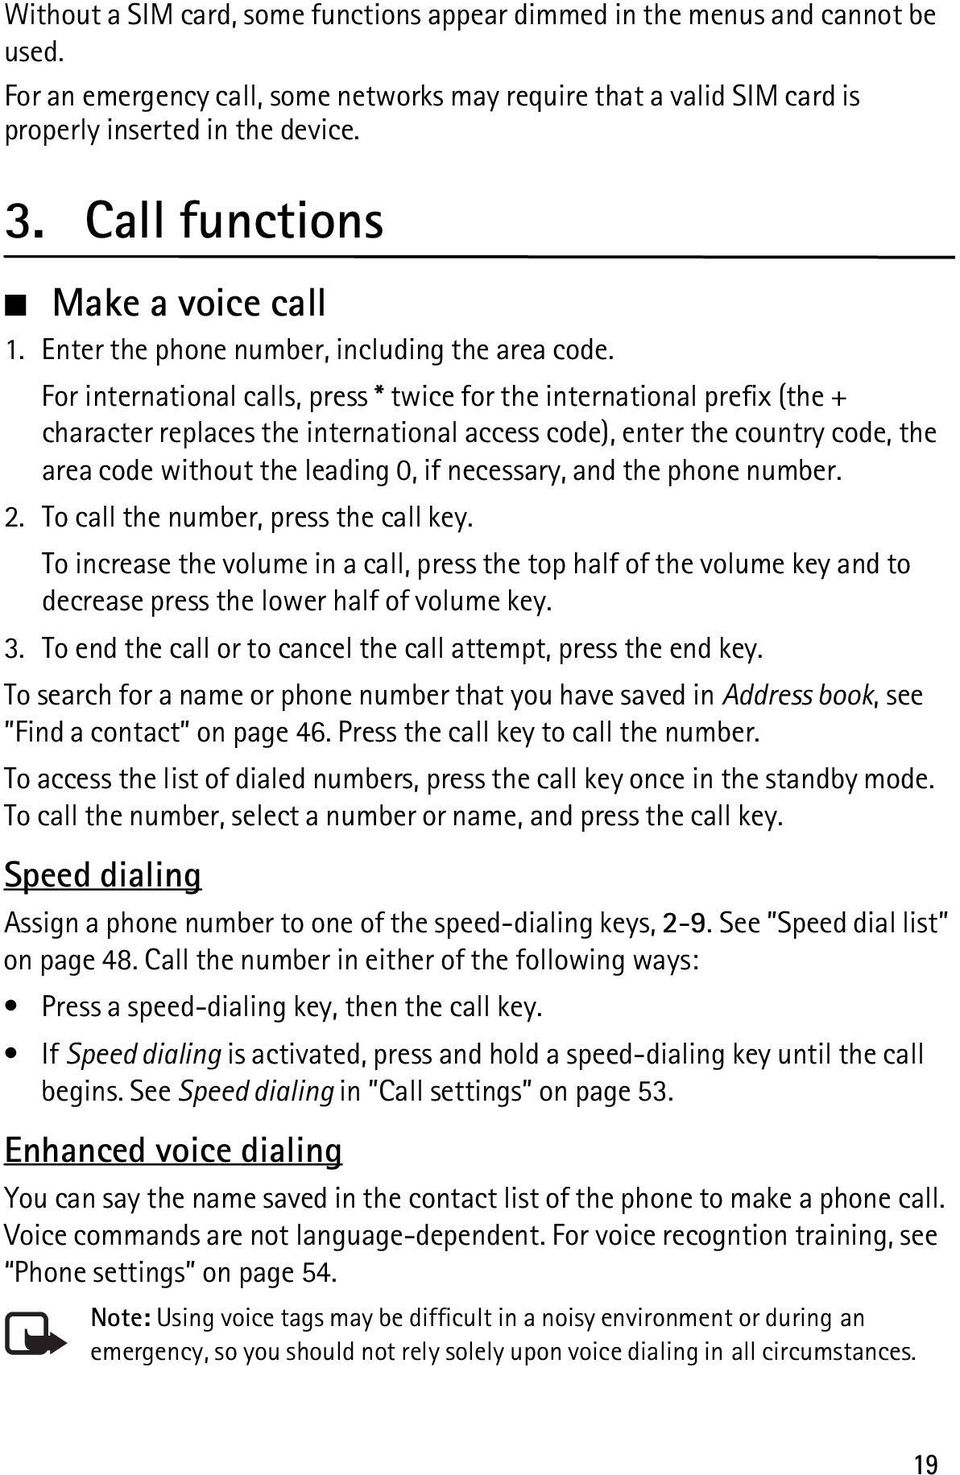 For international calls, press * twice for the international prefix (the + character replaces the international access code), enter the country code, the area code without the leading 0, if